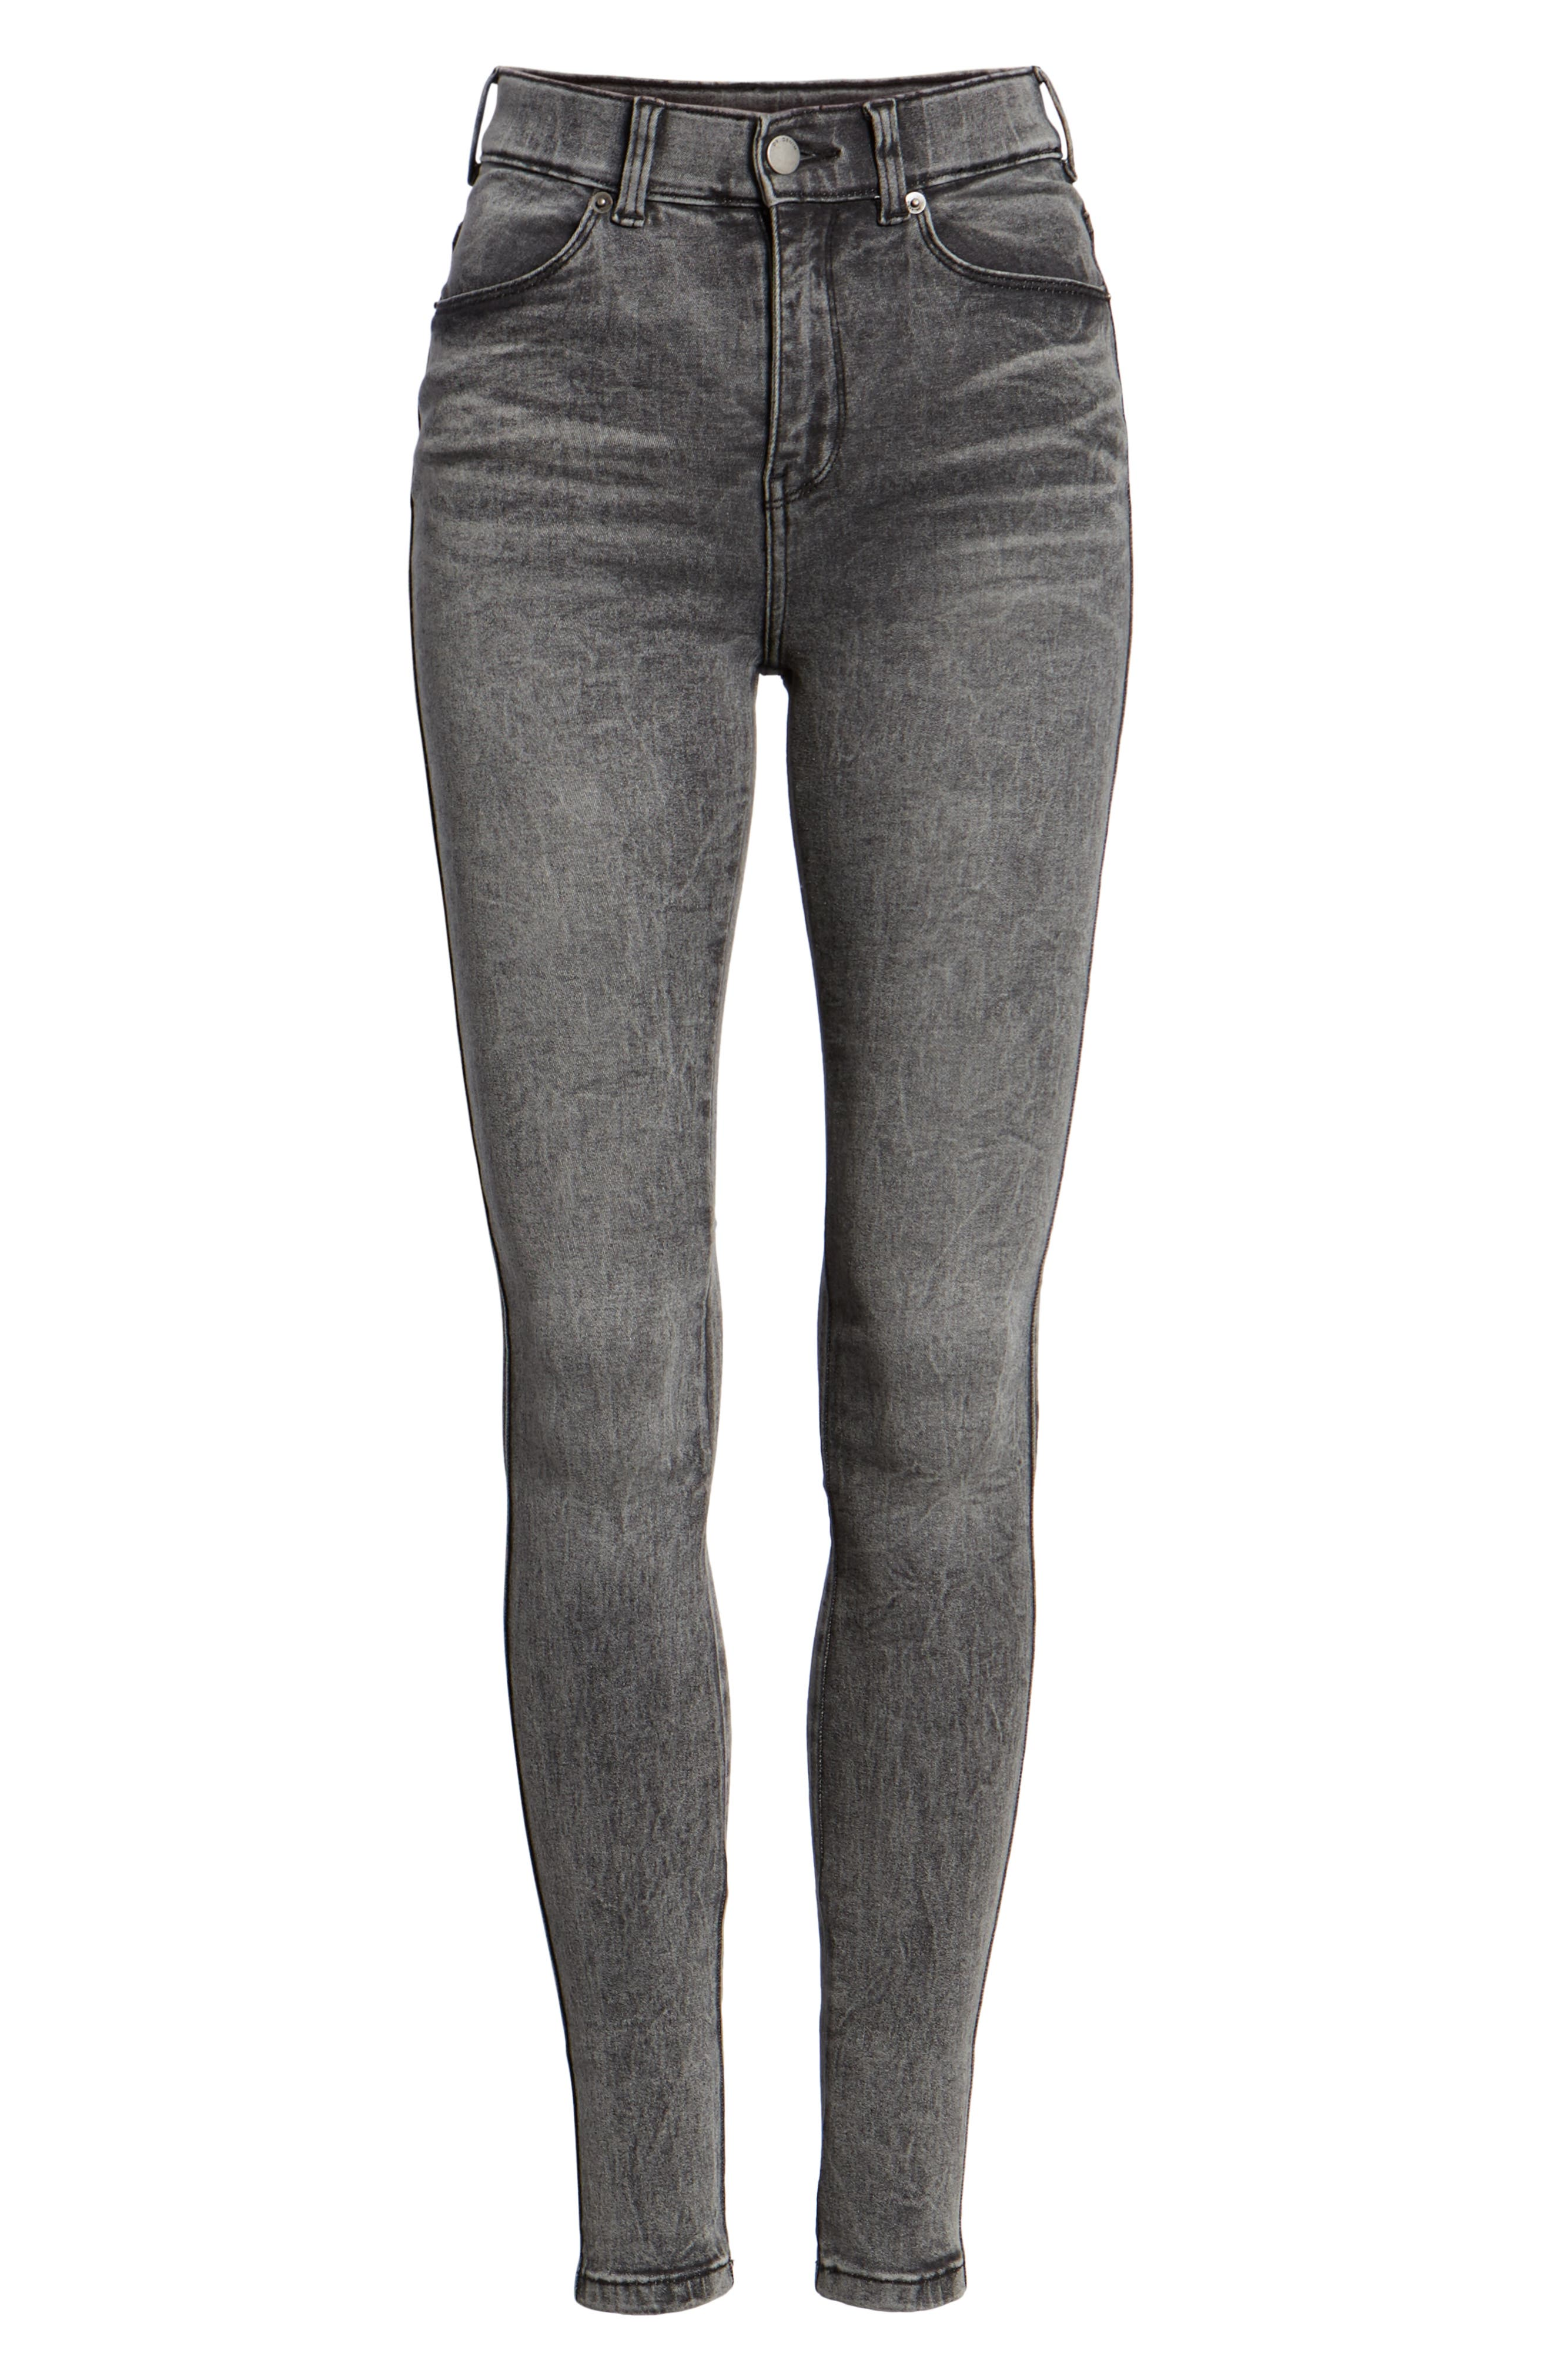 Lexy Skinny Jeans,                             Alternate thumbnail 7, color,                             BOULDER GREY